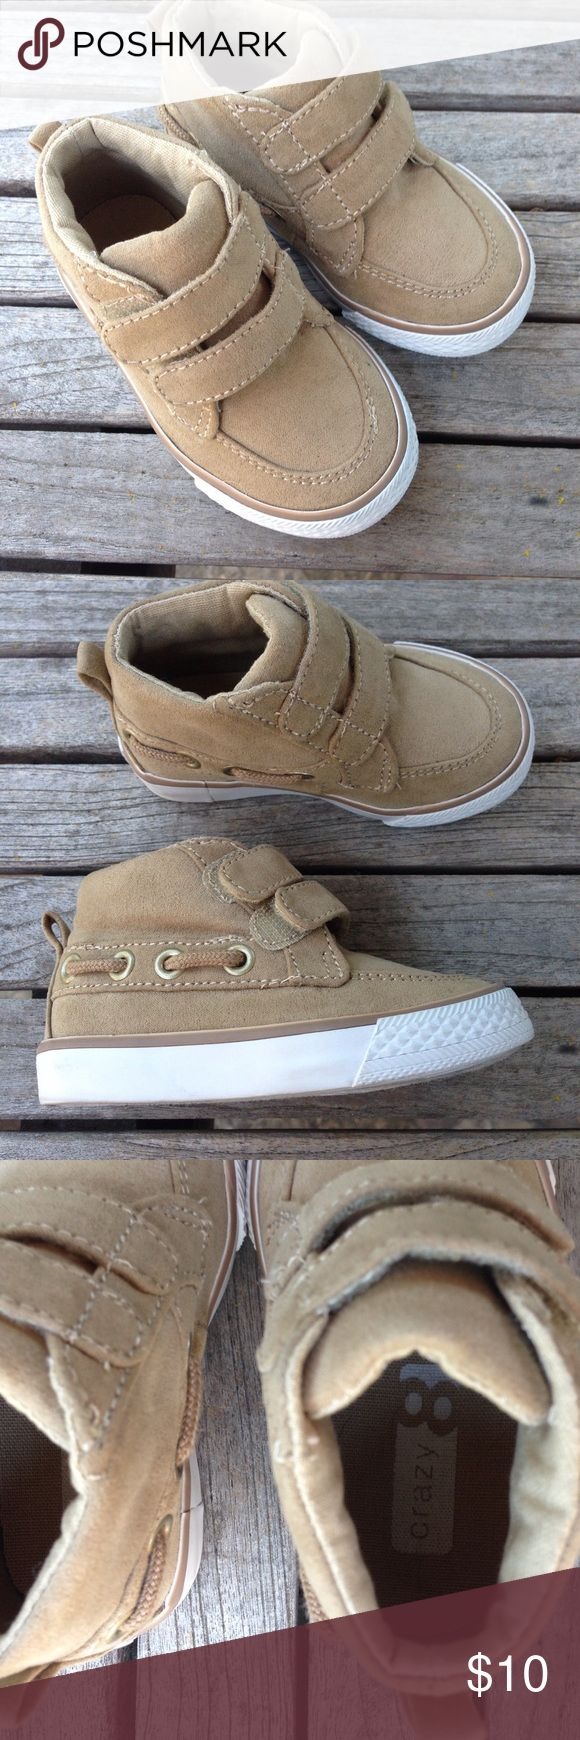 Toddler Boys Hiking Boots Perfect for that little boy. Sturdy Crazy 8 beige boots with loop and hook fasteners Size 5 Very little wear – check out my other toddler boy shoes and bundle them to receive a great deal. Crazy8 Shoes Baby & Walker